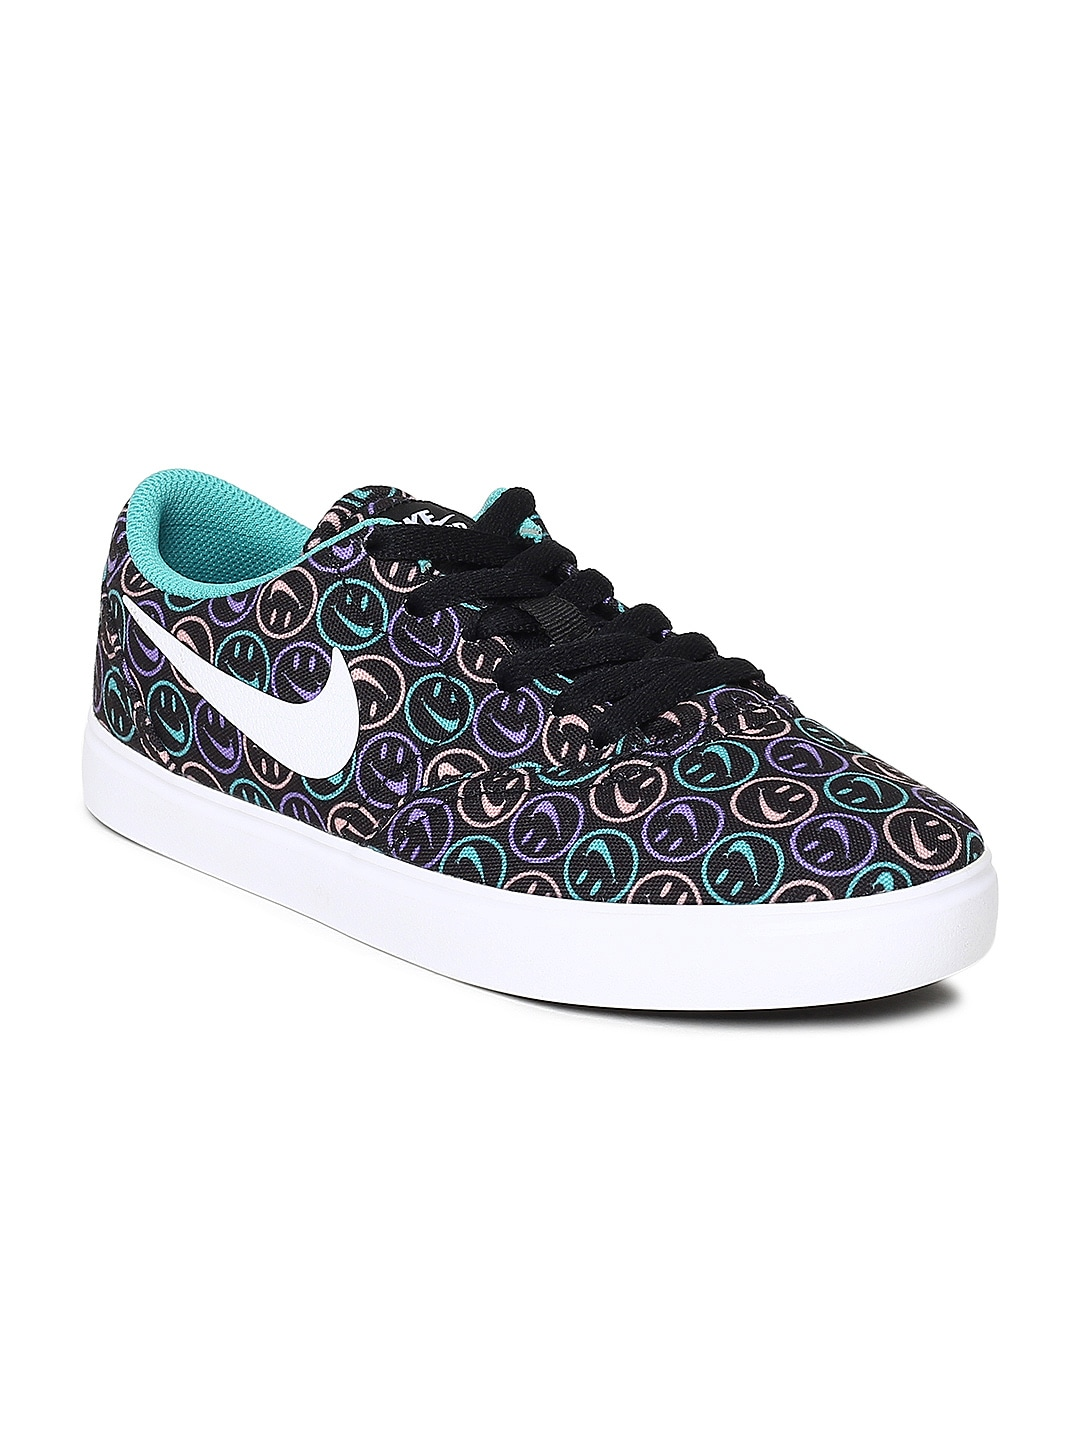 new style 97639 d4994 Nike Canvas Shoes   Buy Nike Canvas Shoes Online in India at Best Price